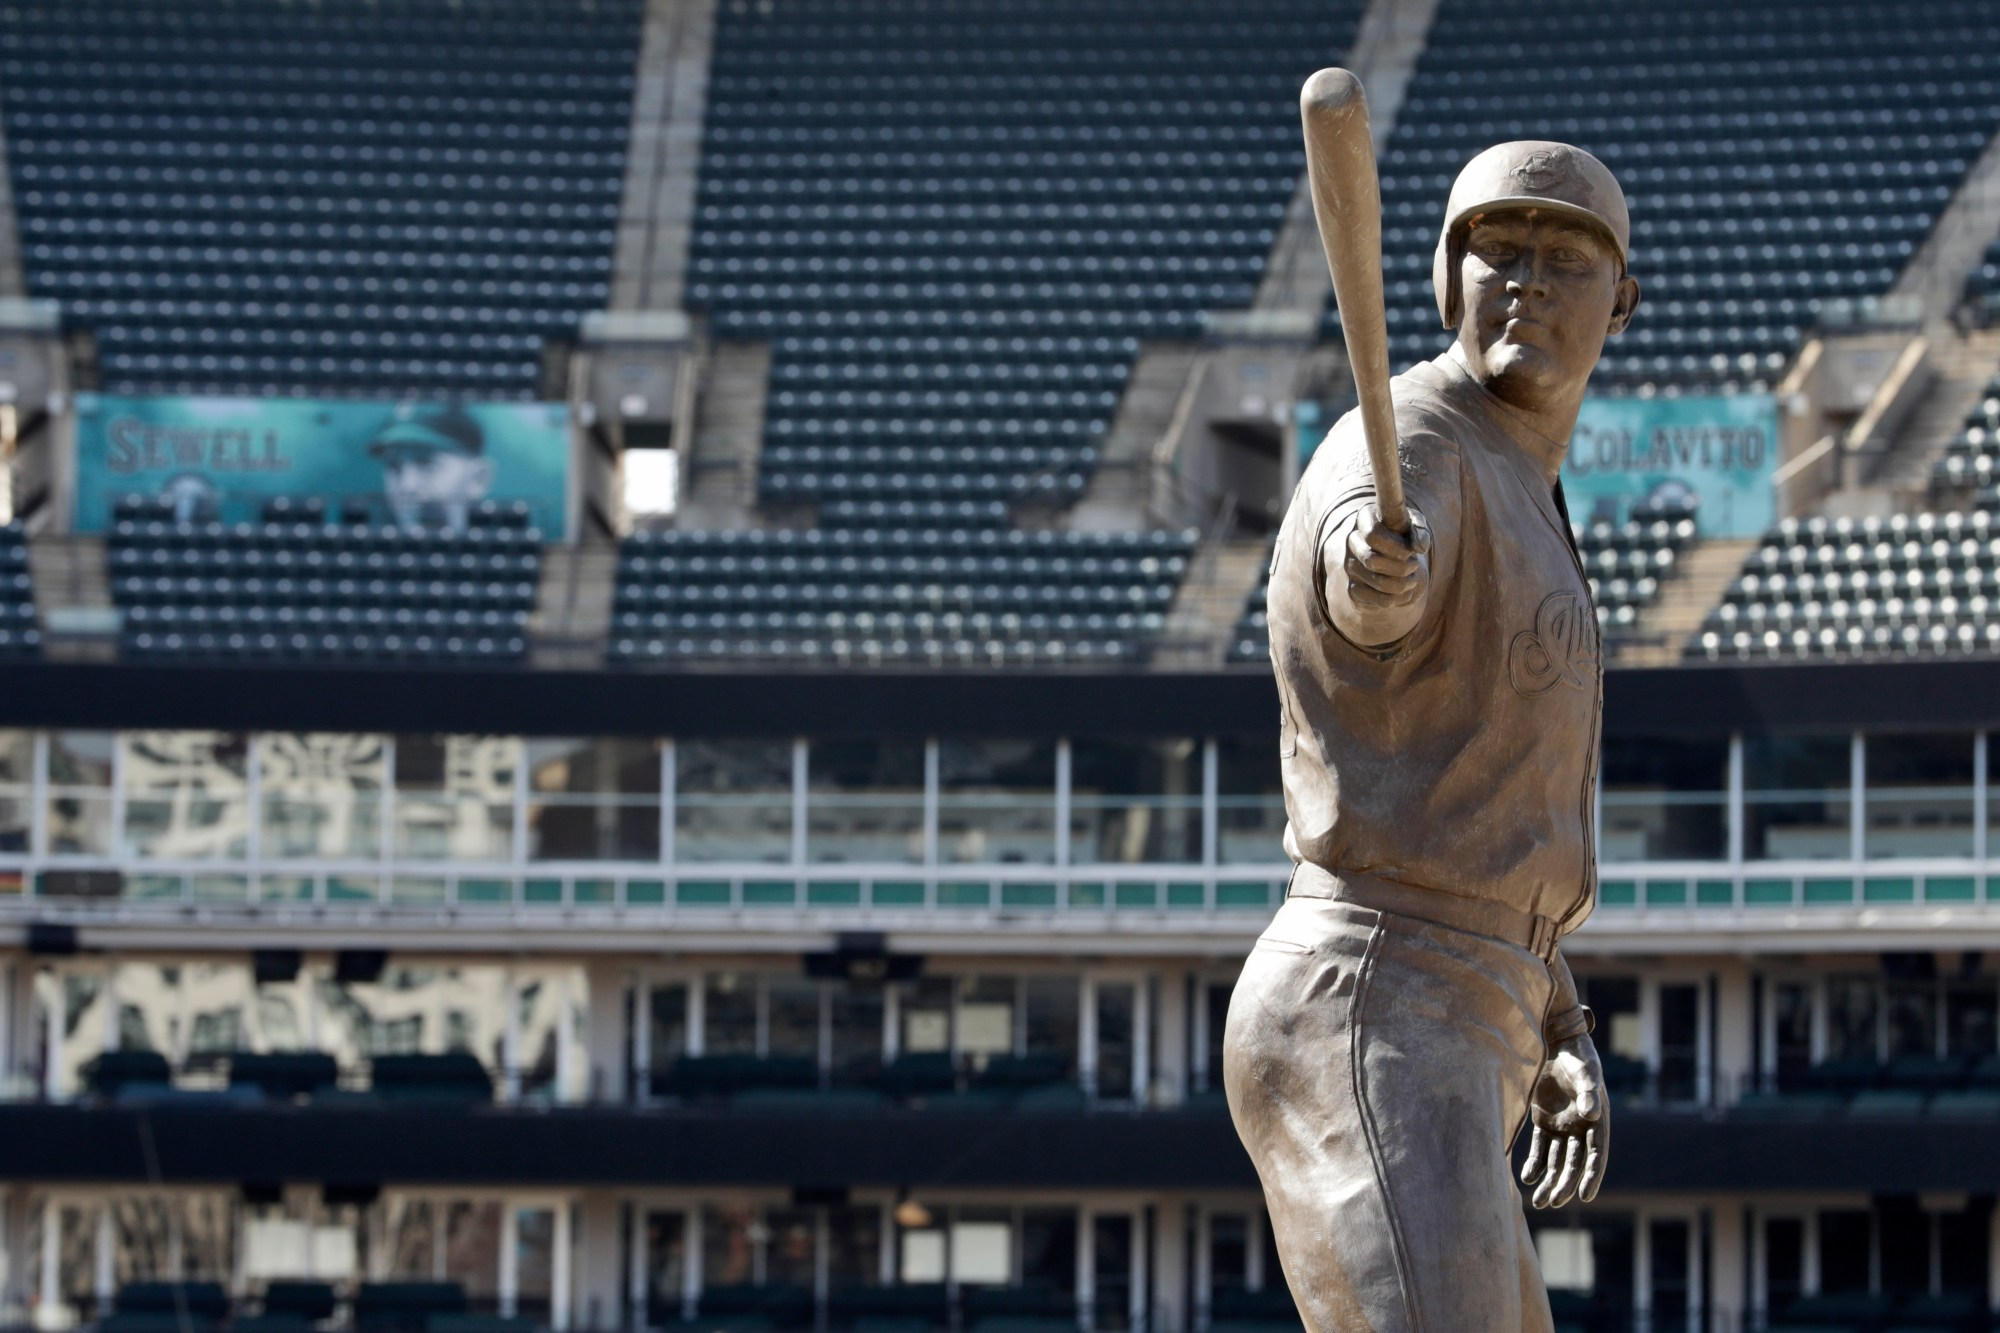 A statue of former Cleveland Indians Jim Thome stands in an empty Progressive Field, Thursday, March 26, 2020, in Cleveland. The Cleveland Indians were scheduled to play the Detroit Tigers in an Opening Day baseball game Thursday but the season has been postponed due to the coronavirus.